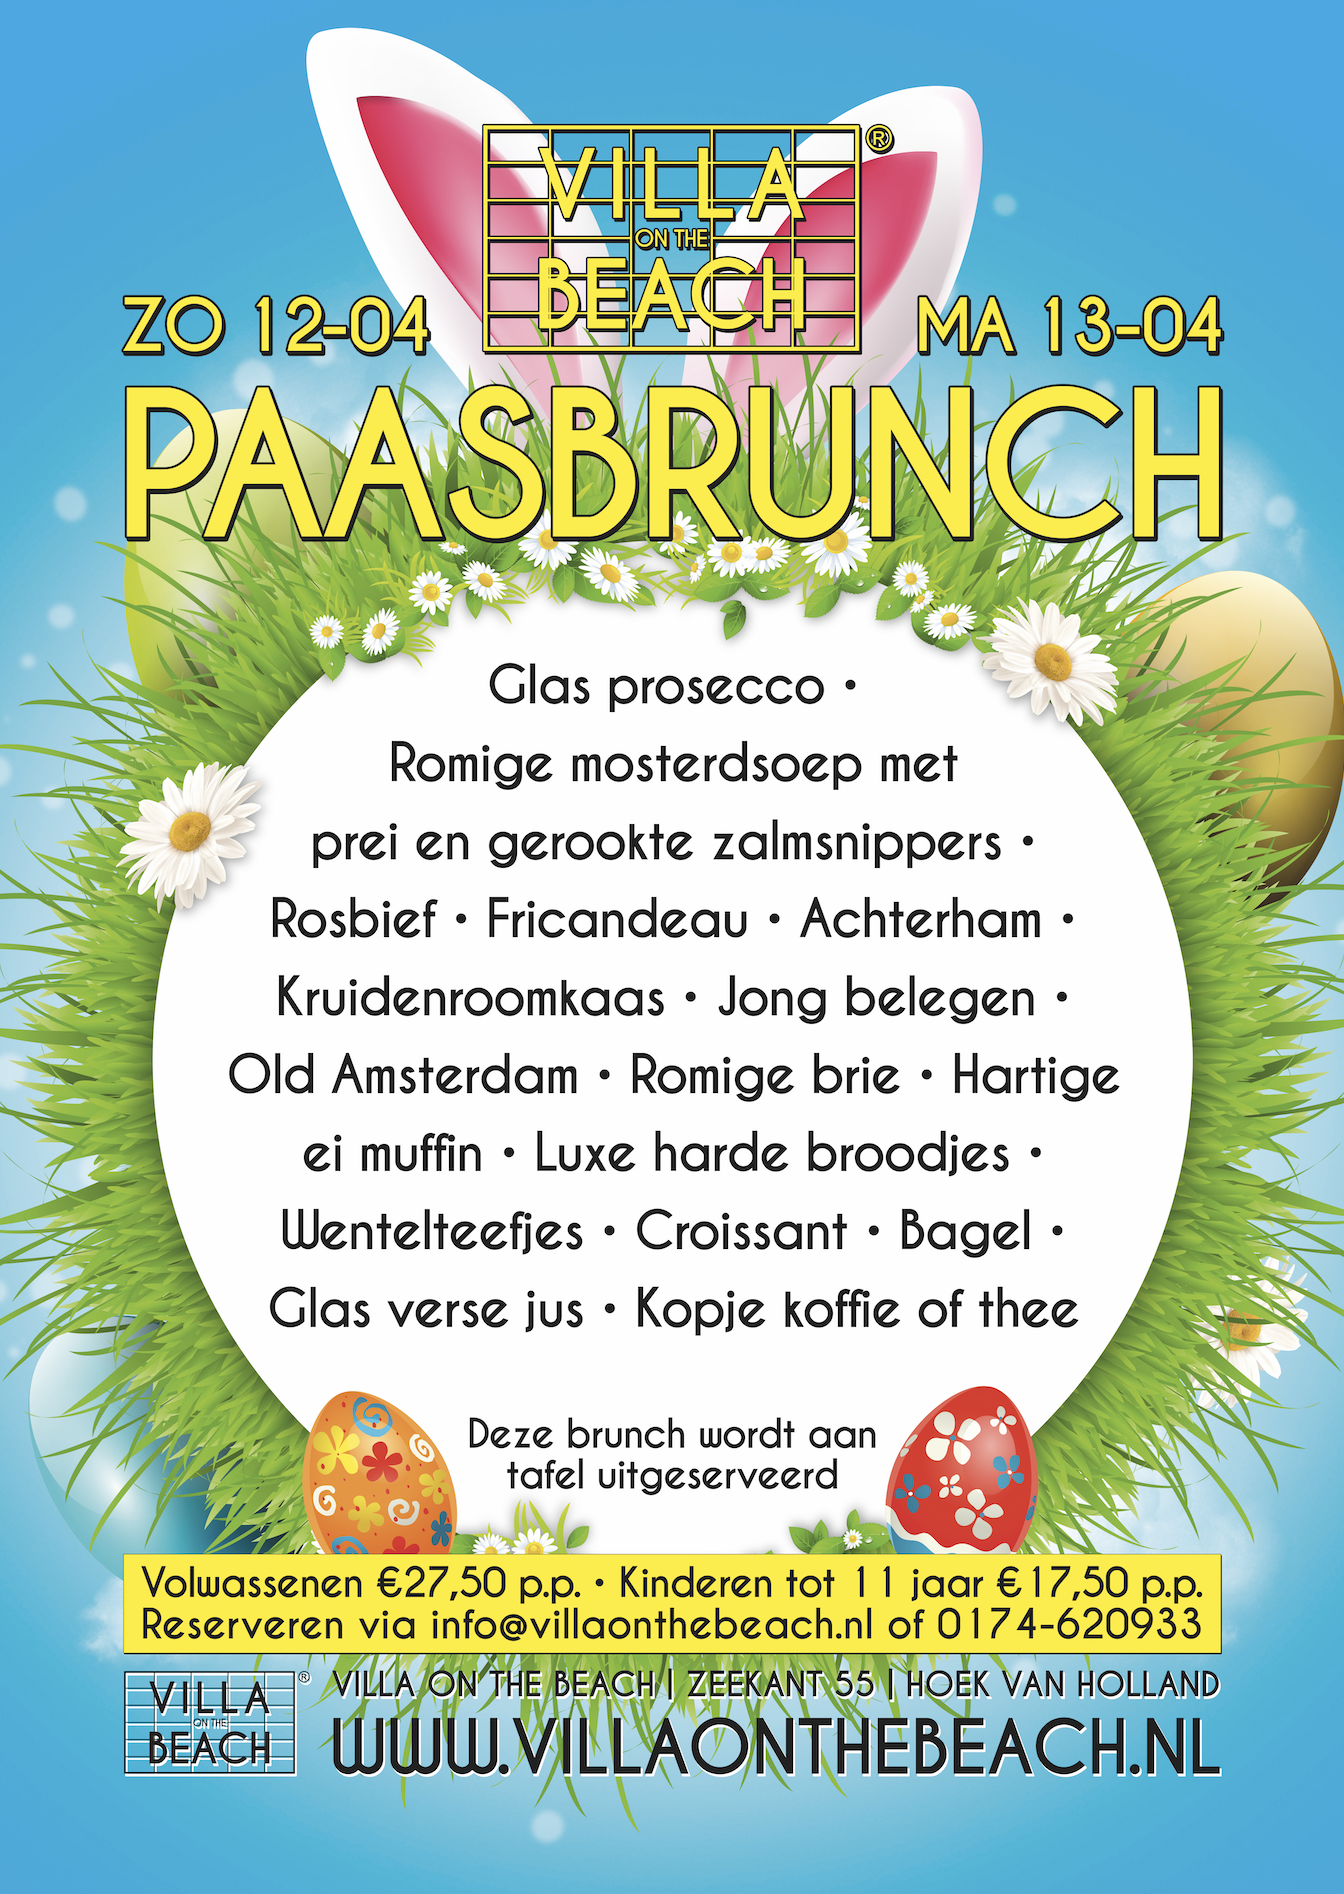 Paasbrunch – Zondag 12 april